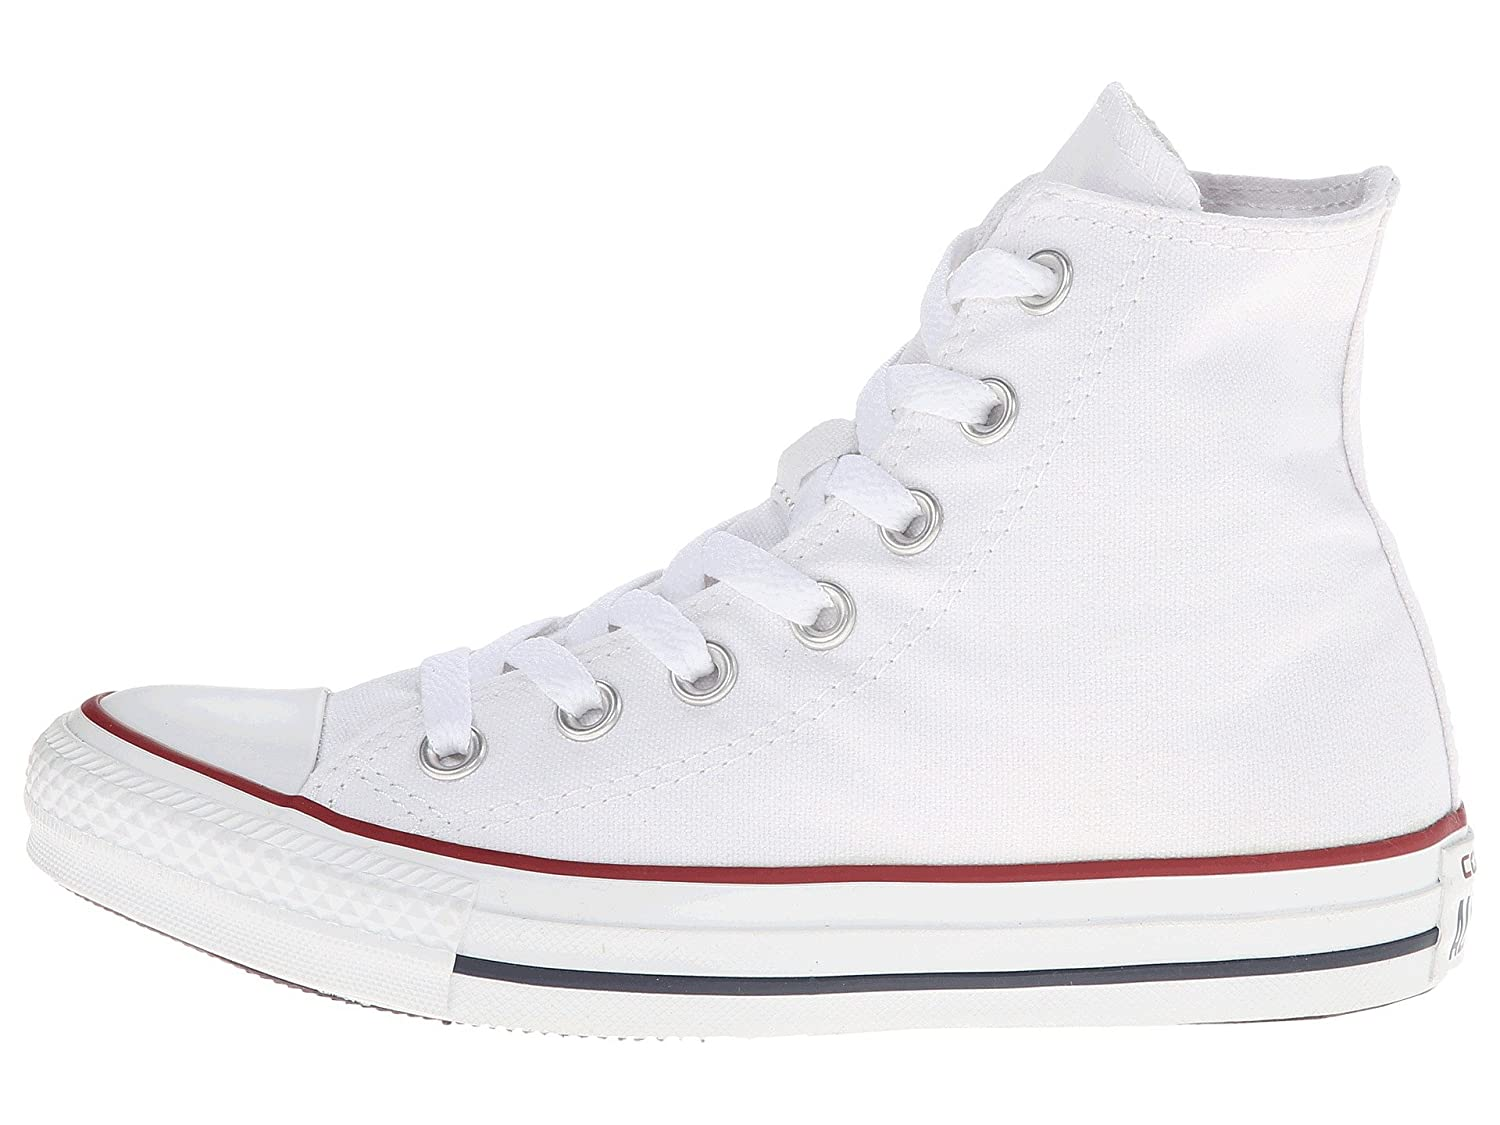 Converse Unisex Chuck Taylor All Star Hi Top Sneaker B077PMY99Y 15 B(M) US Women / 13 D(M) US Men|Optical/White